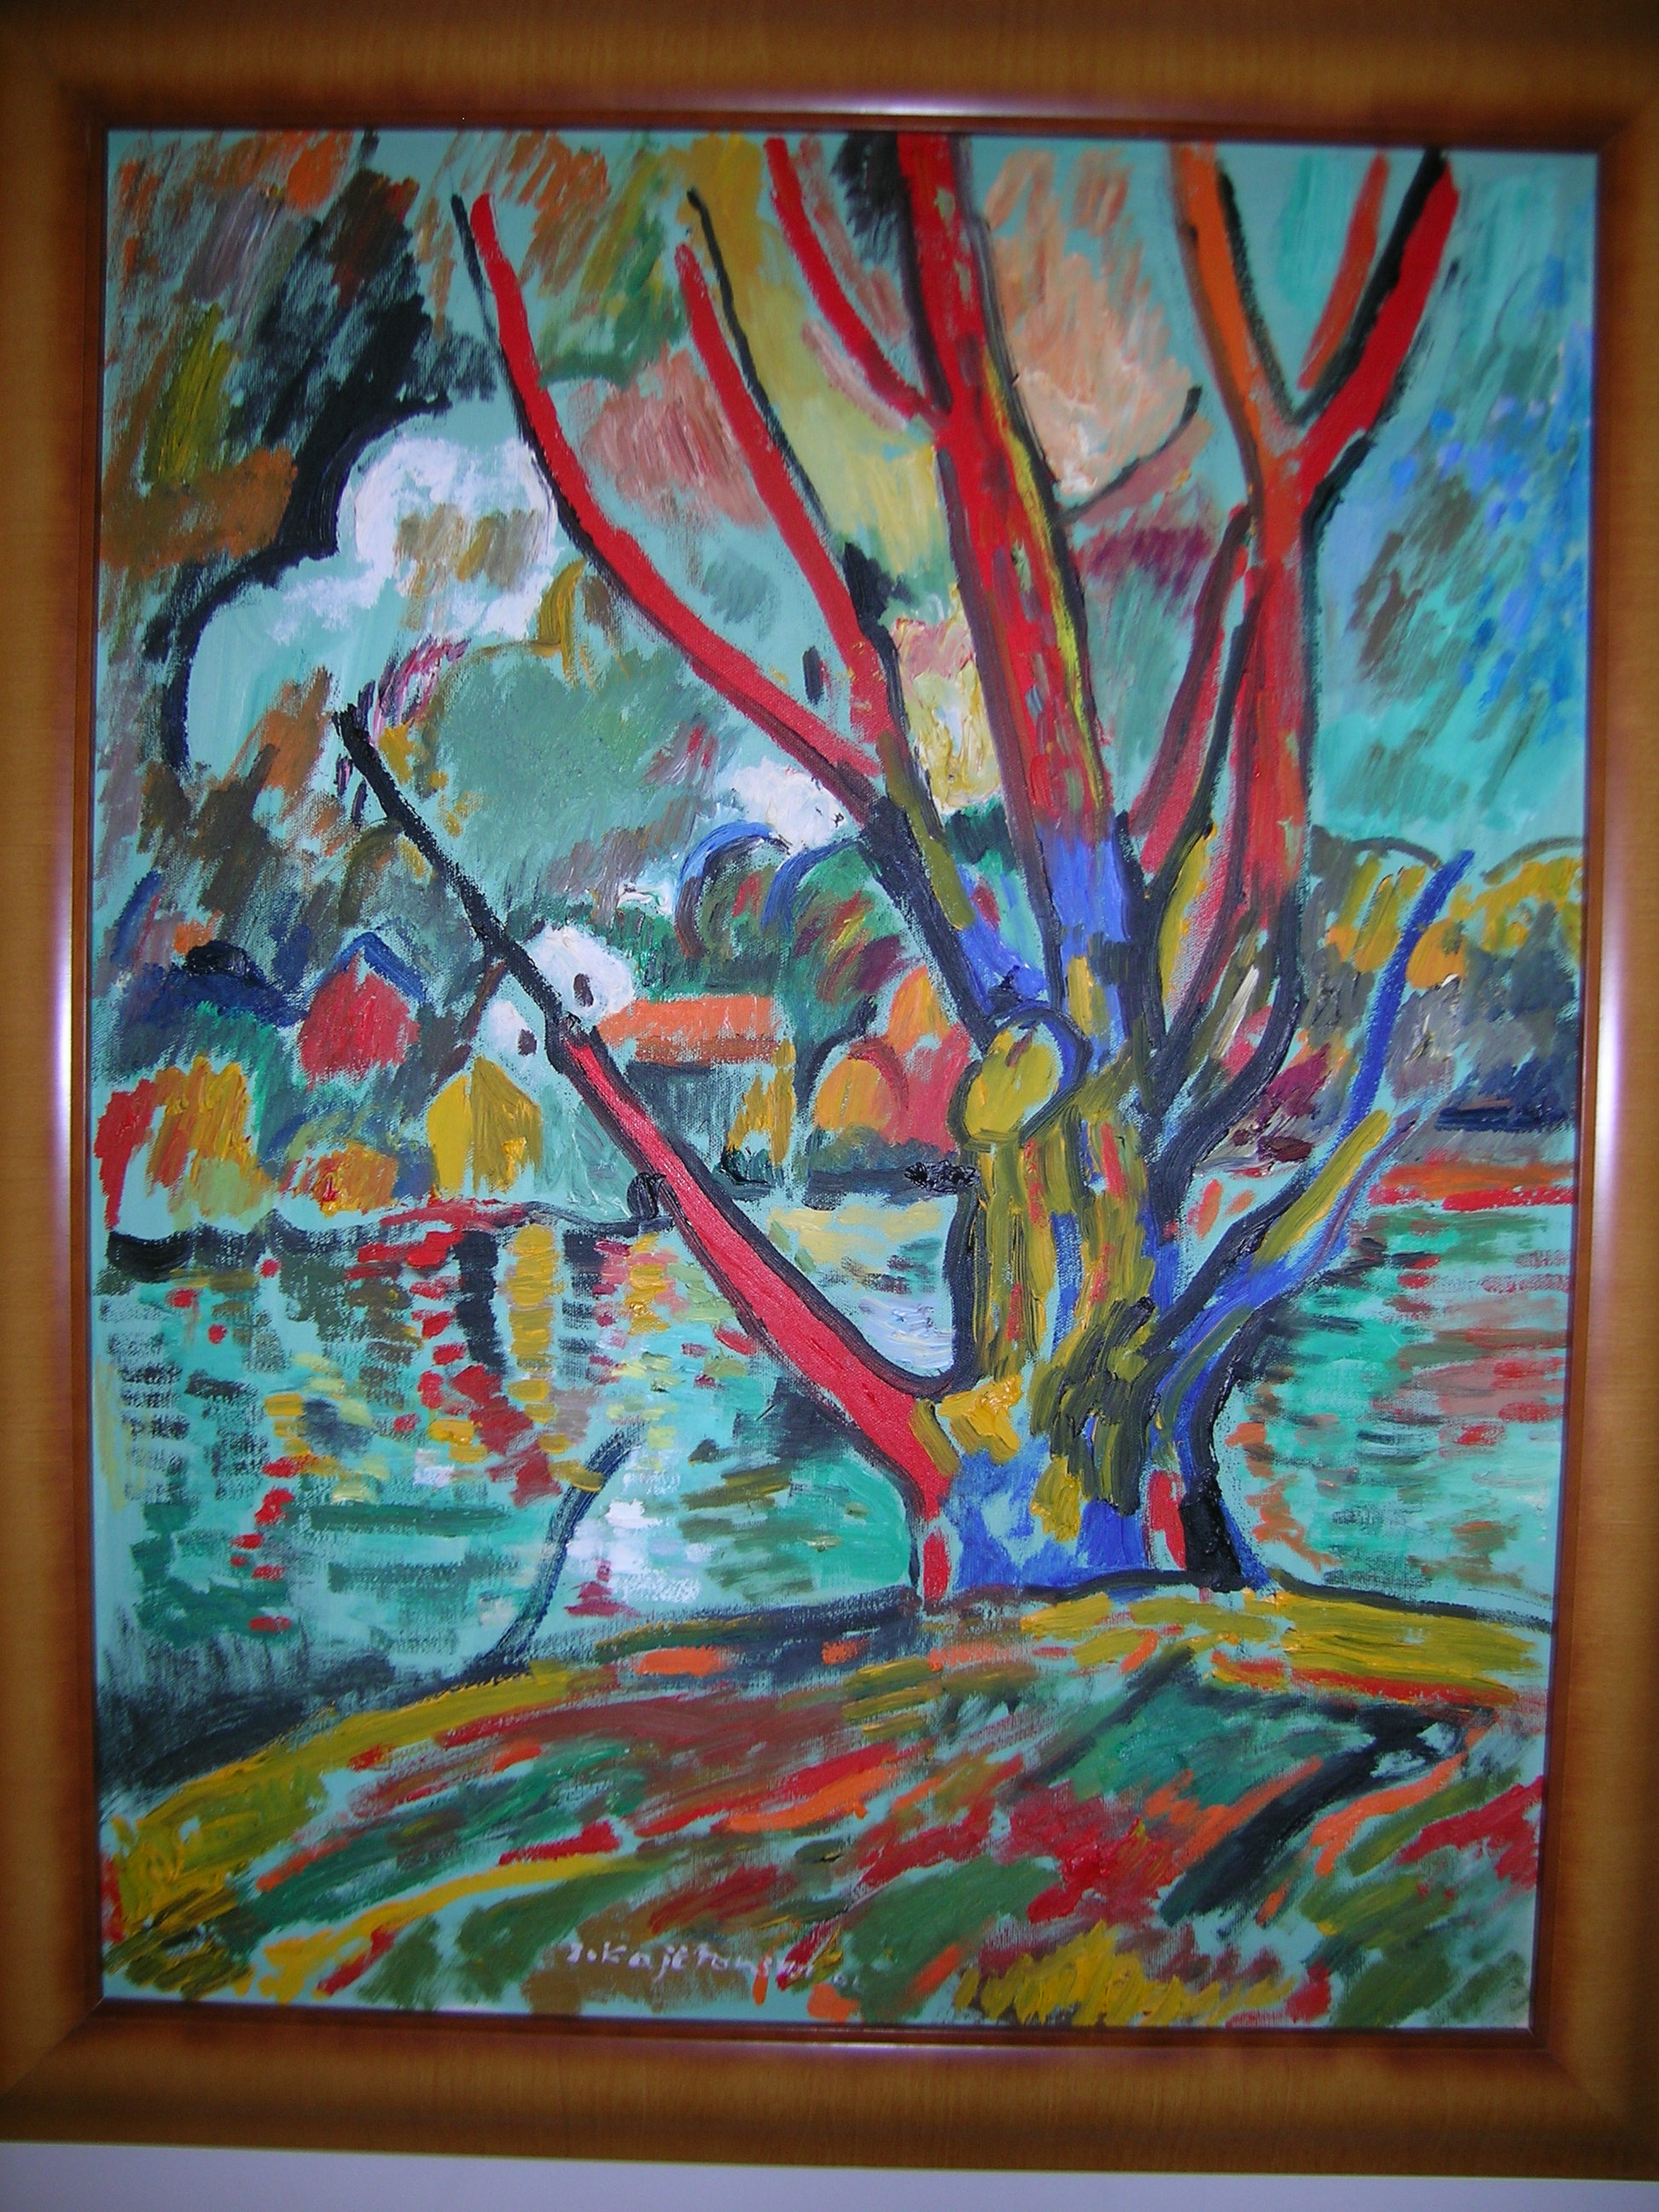 Expressionistic image of willow with the lake and houses in the background. Large clouds in the sky.